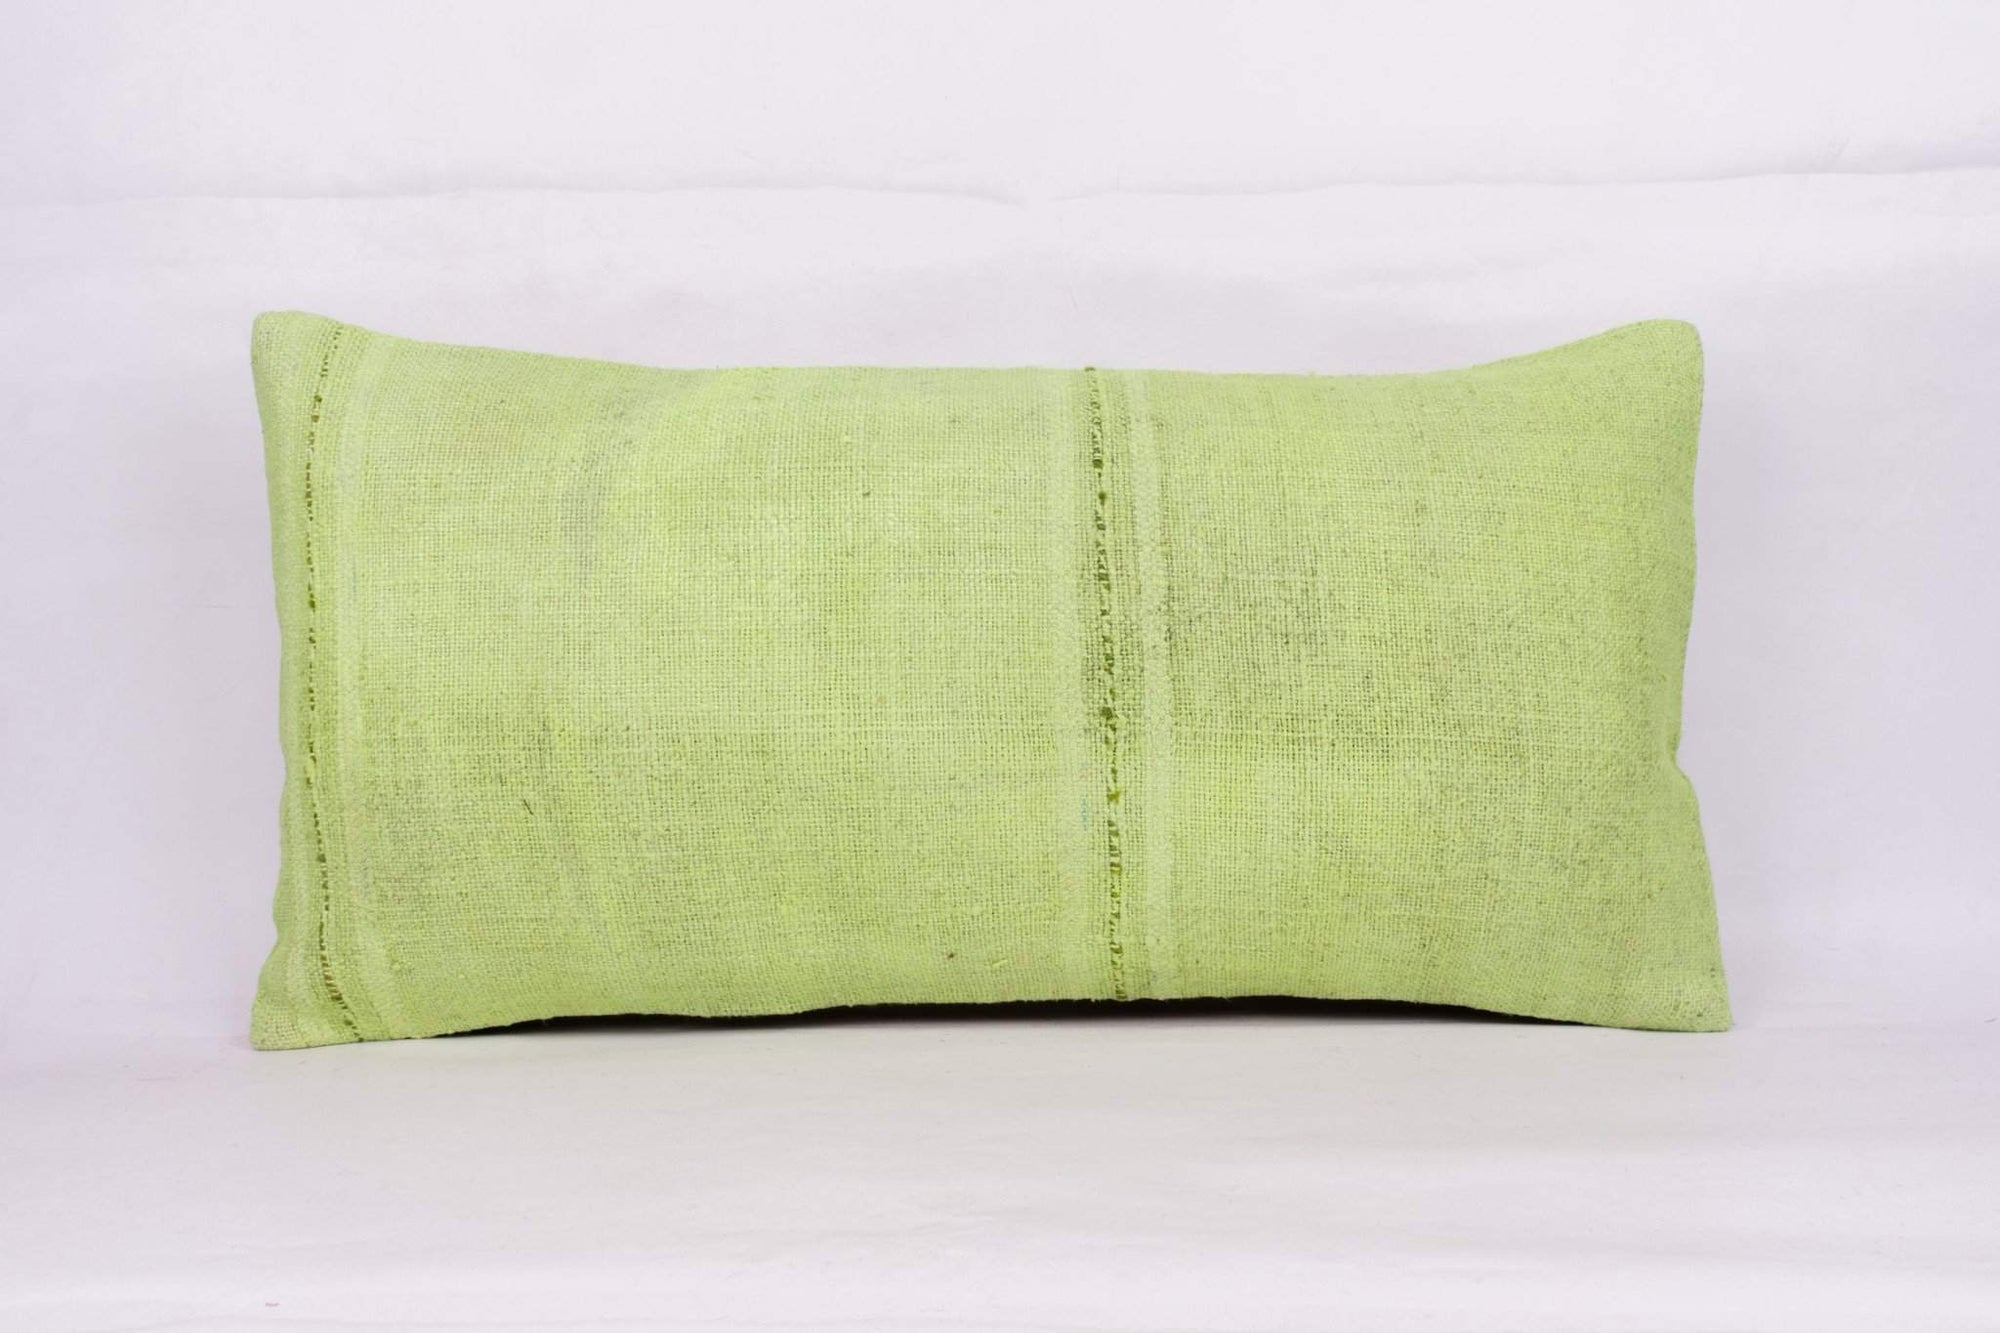 Plain Green Kilim Pillow Cover 12x24 4120 - kilimpillowstore  - 1